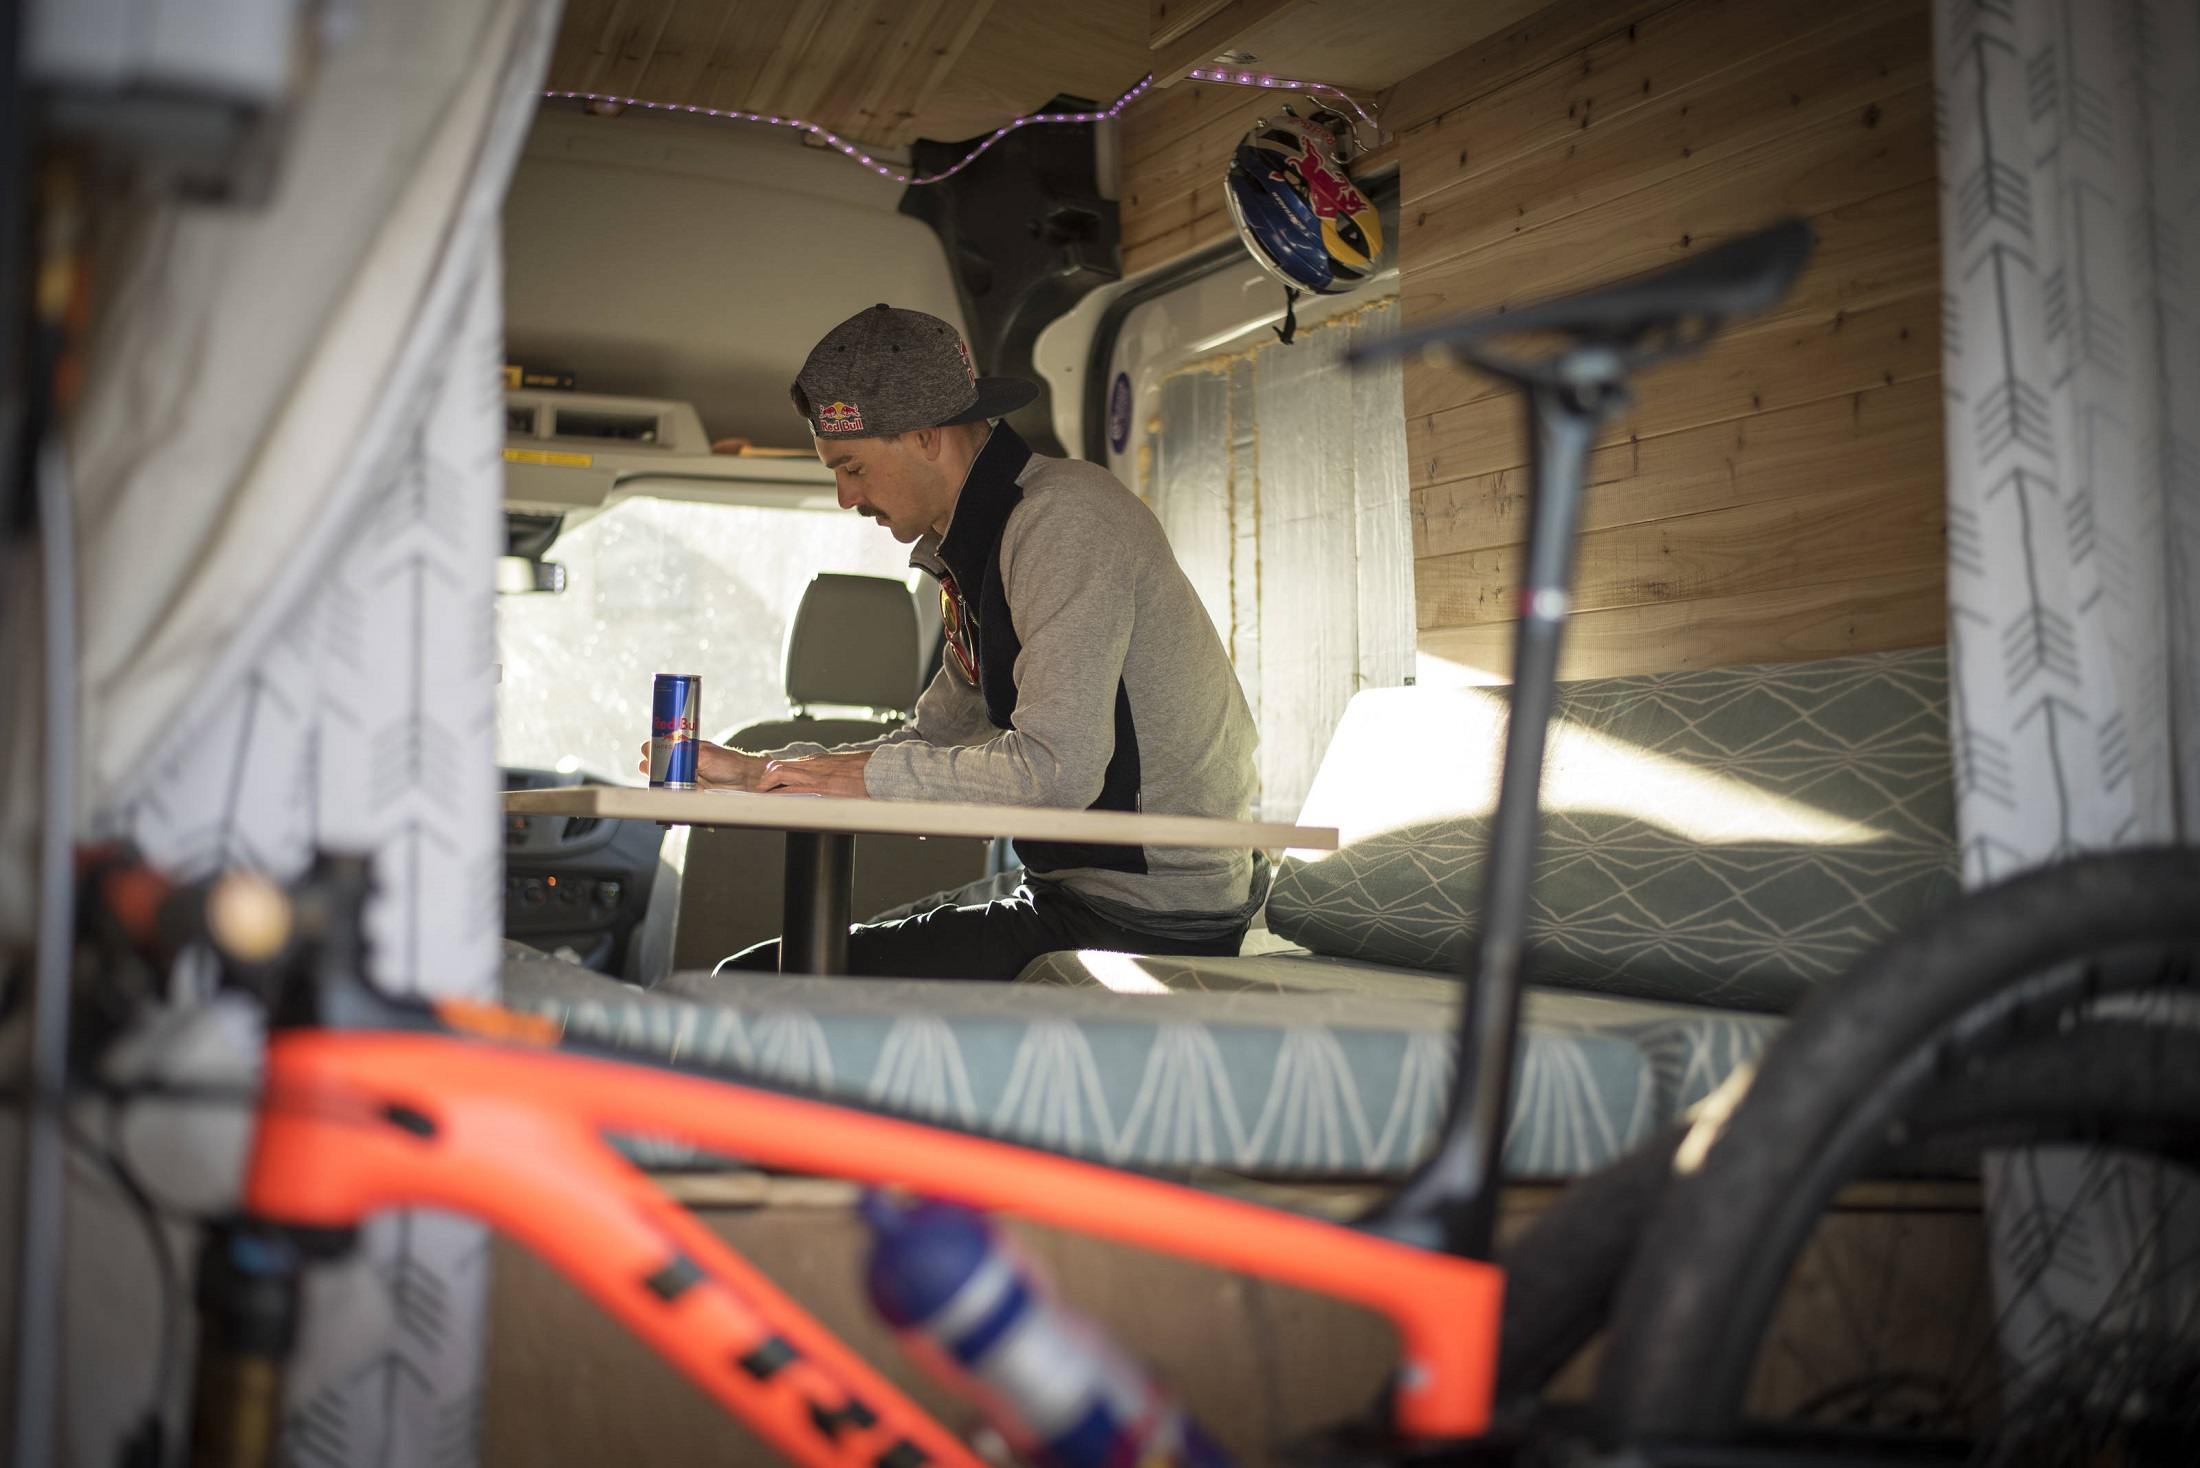 Iceland FKT: McElveen prepares for a training ride in Durango, CO, (photo/Monika B. Leopold, Red Bull Content Pool)